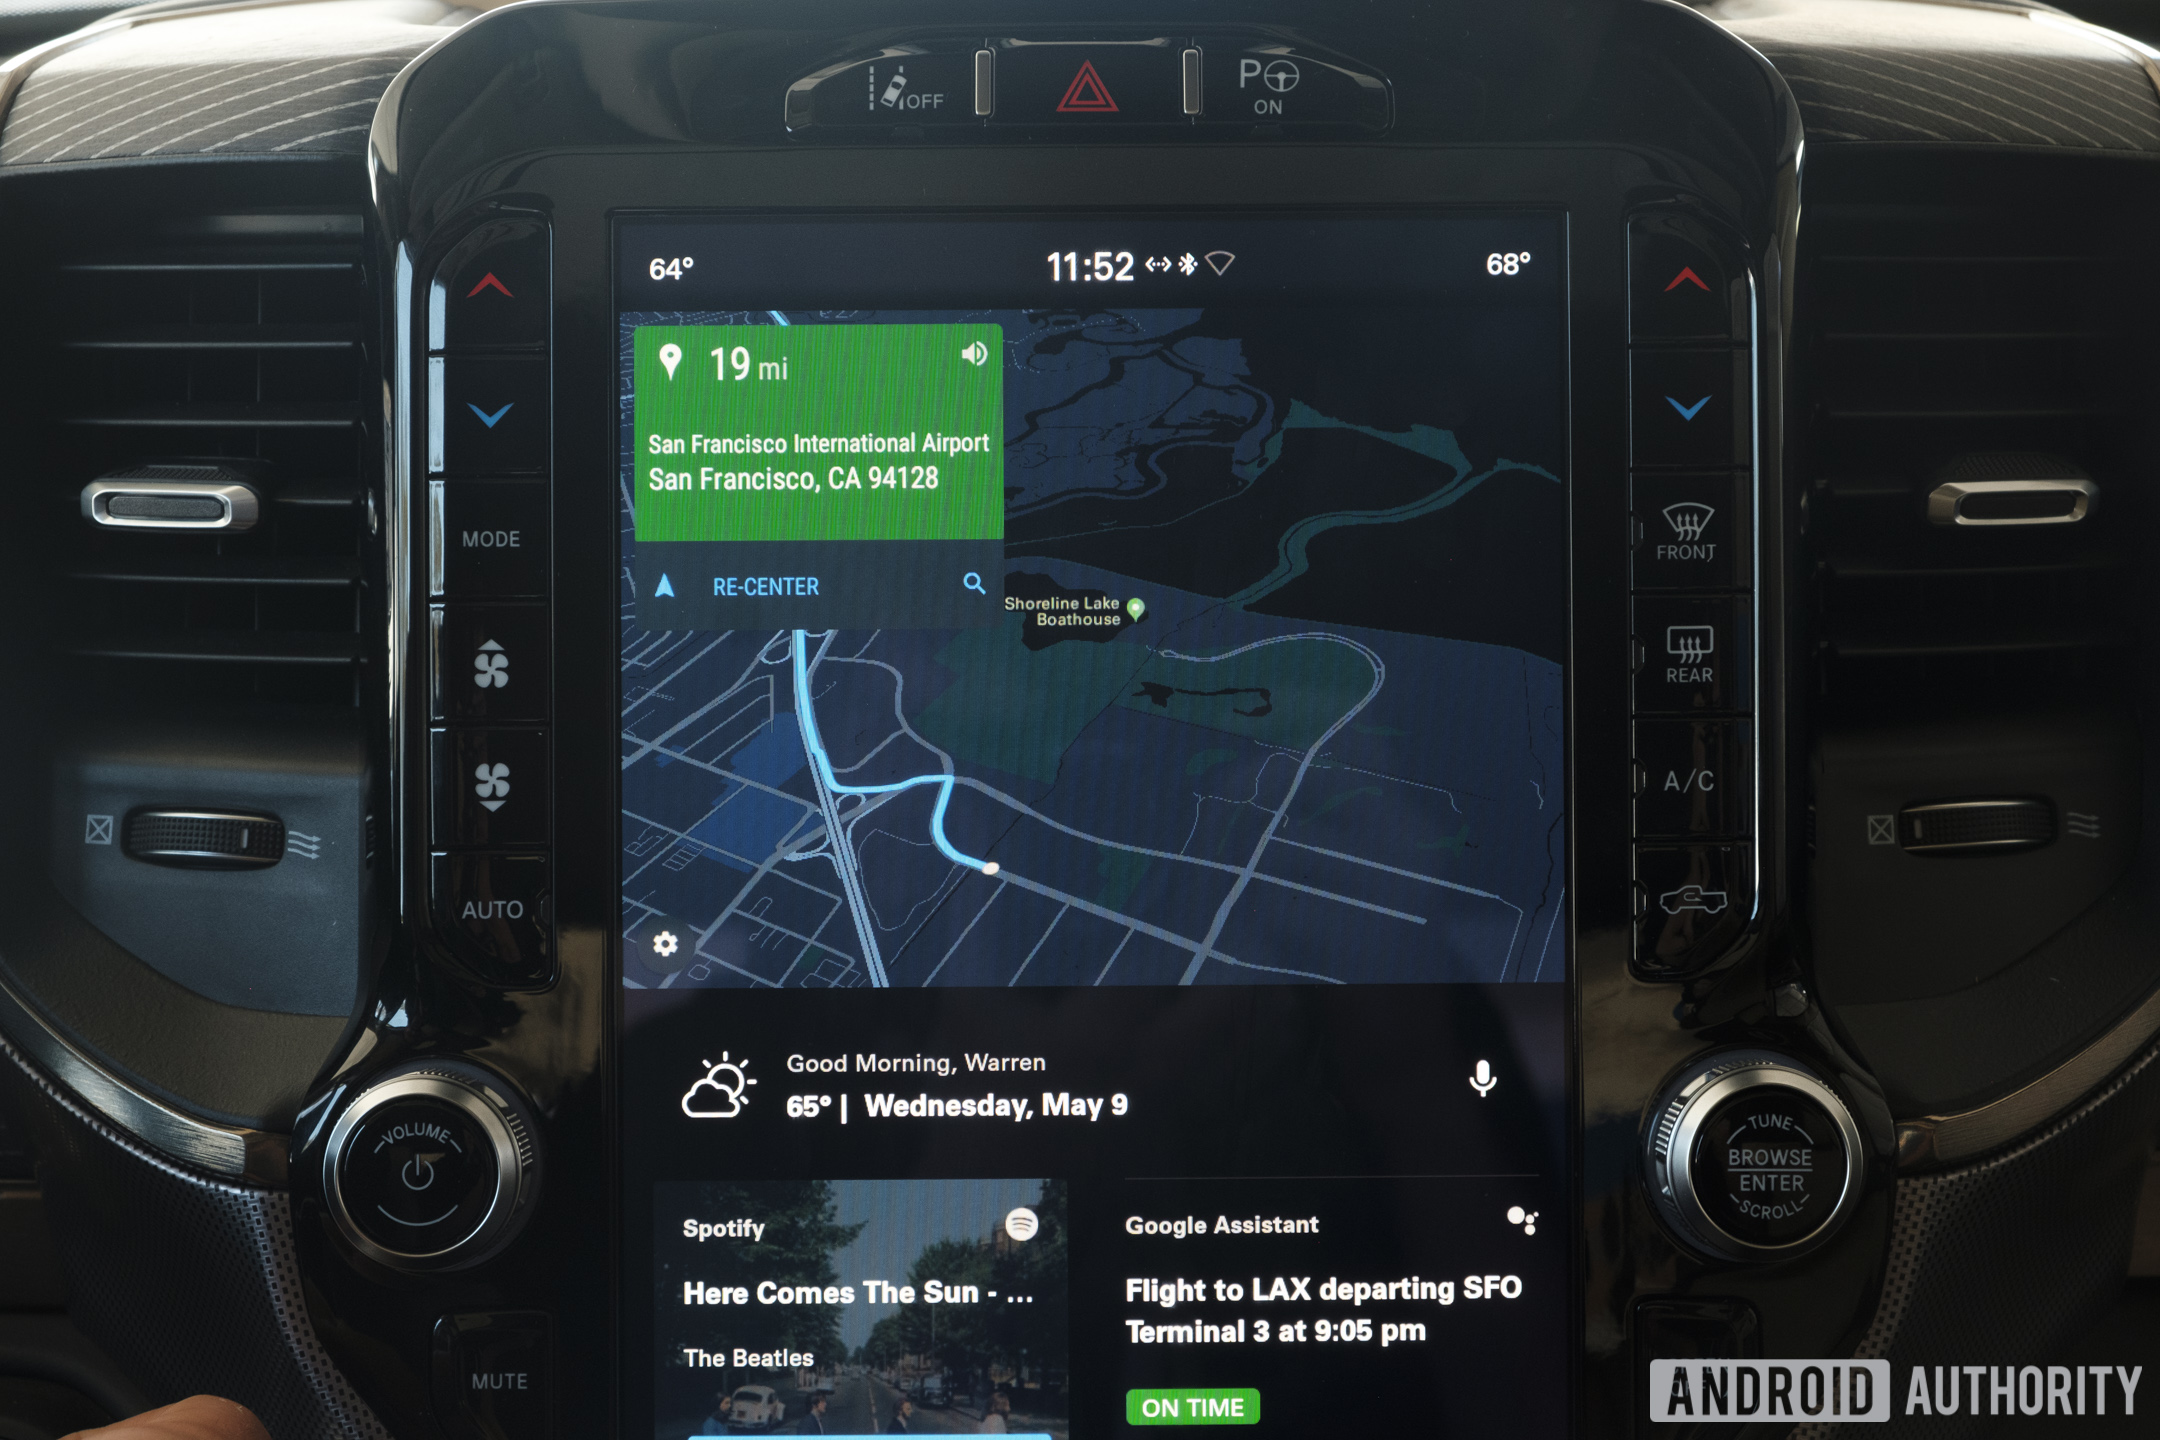 Here's what the future of Android Auto looks like